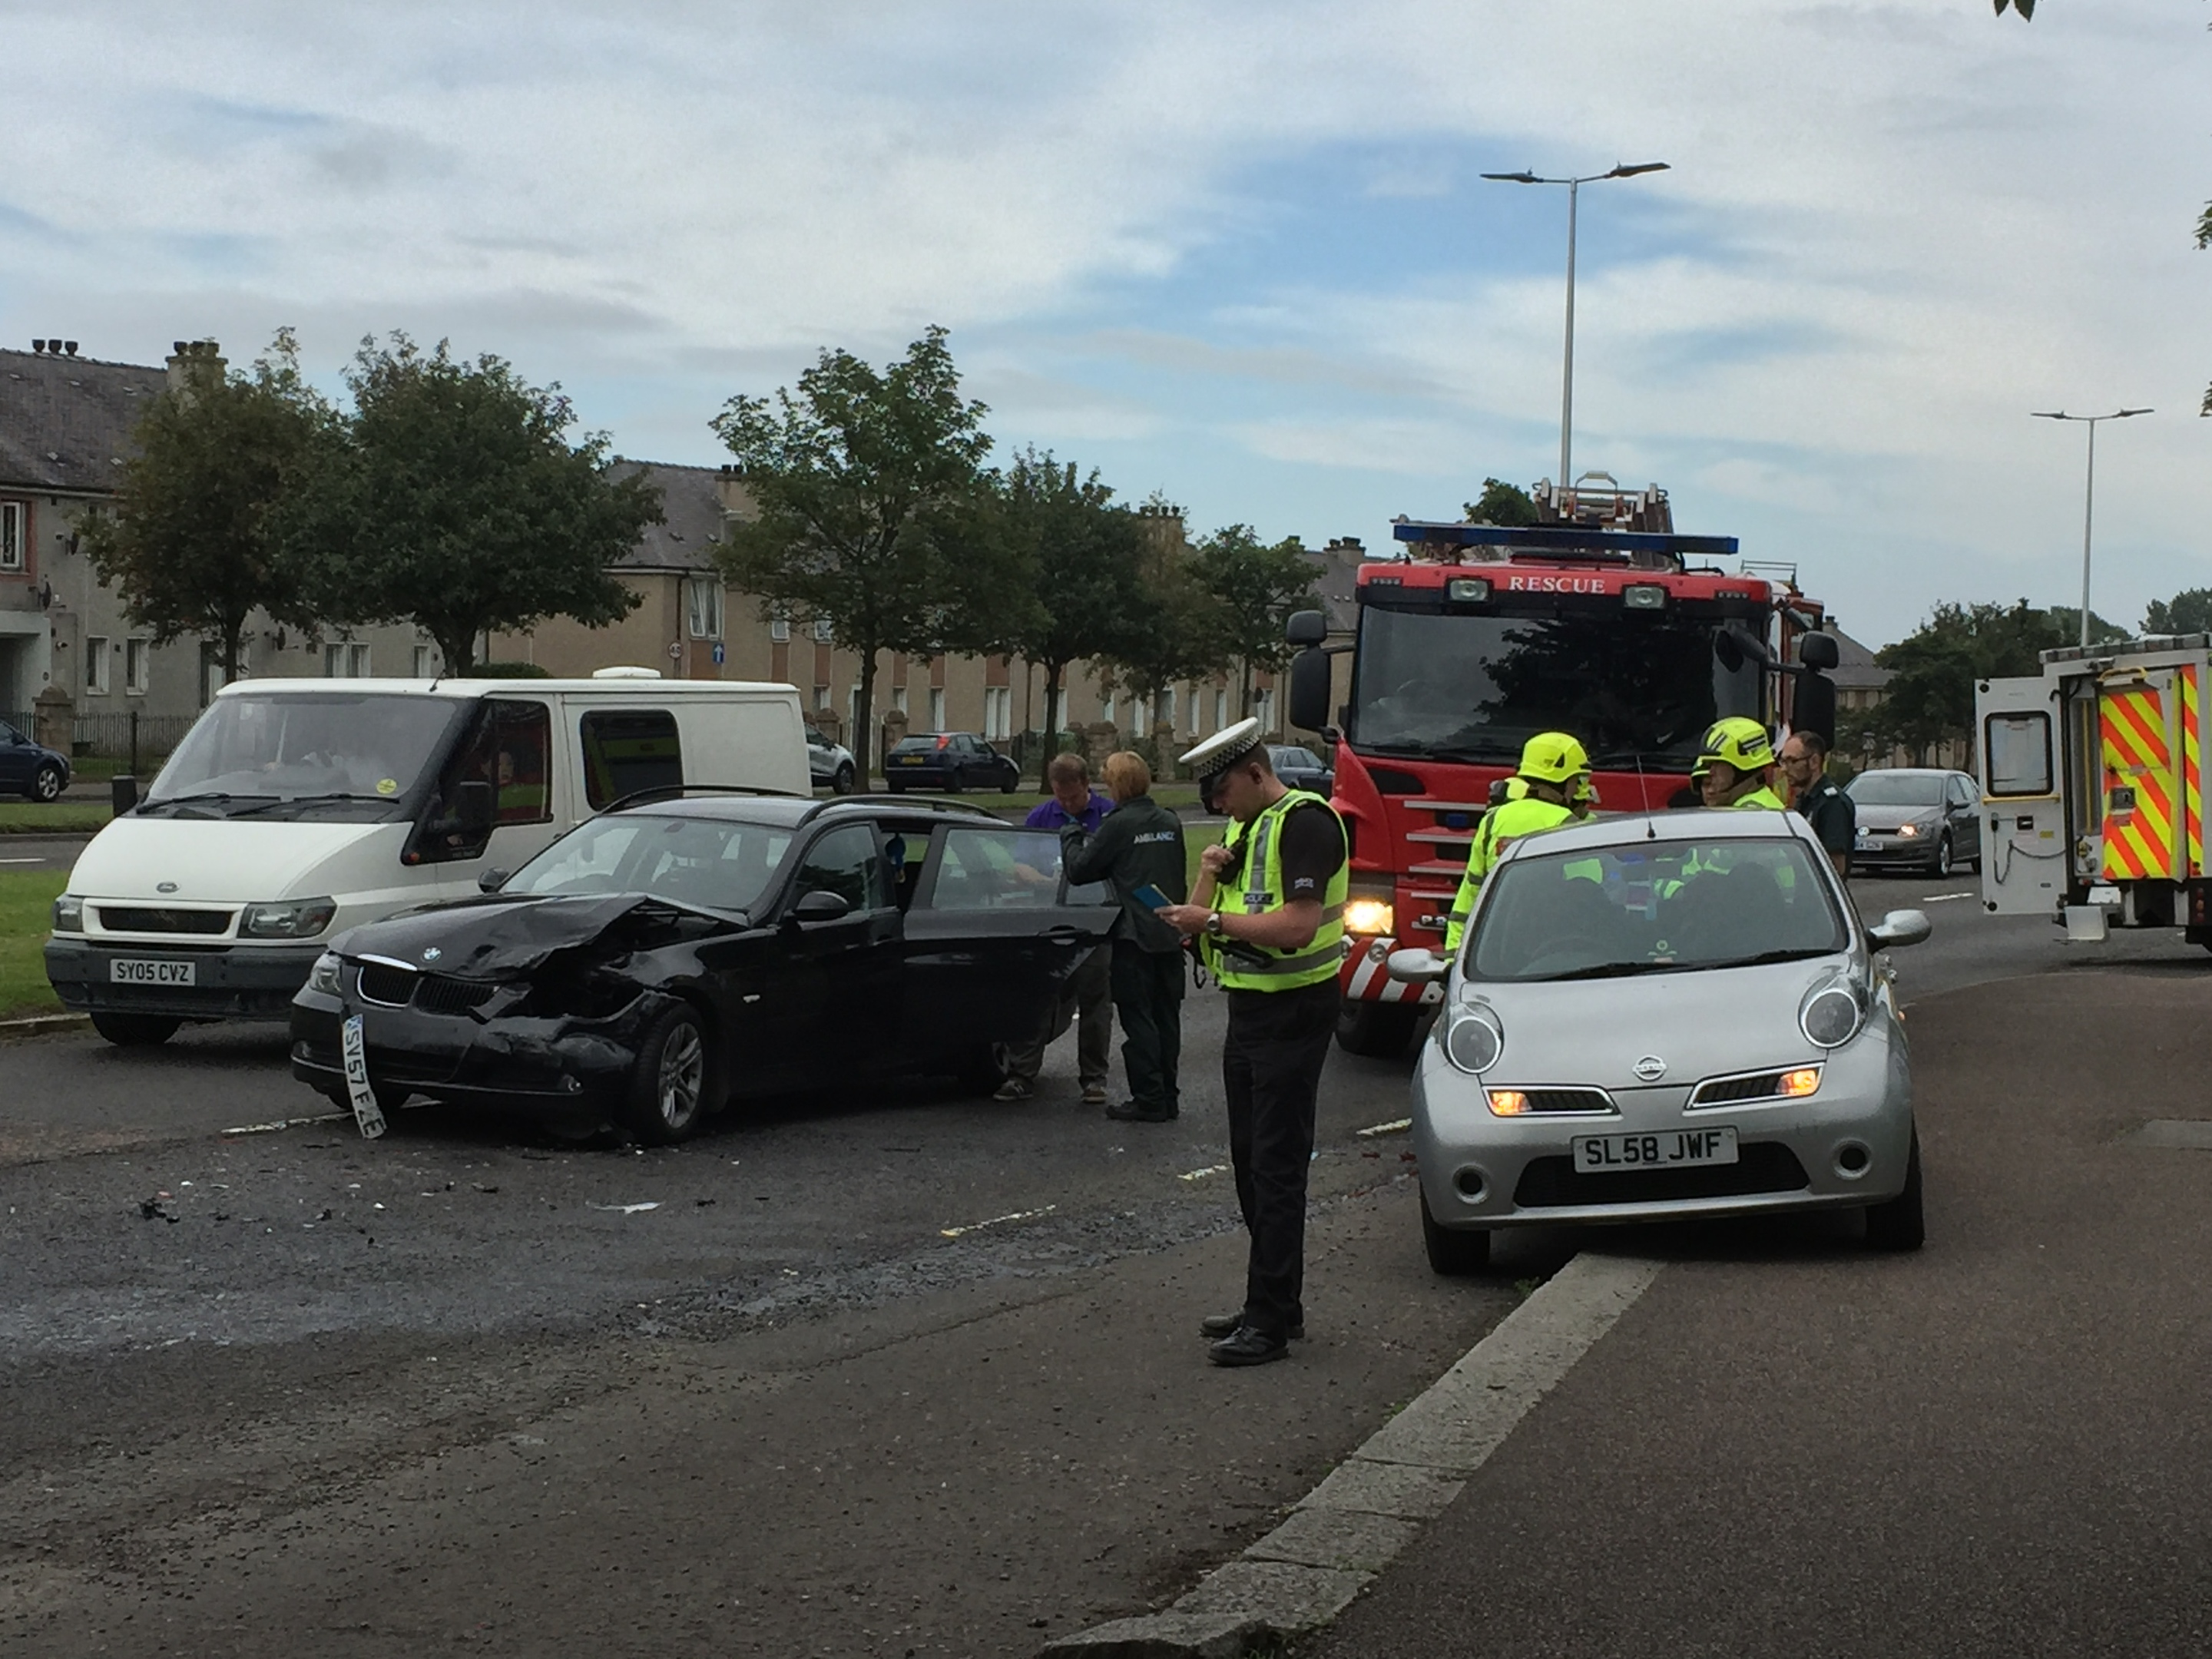 Despite emergency services attending, no one was harmed in the crash.